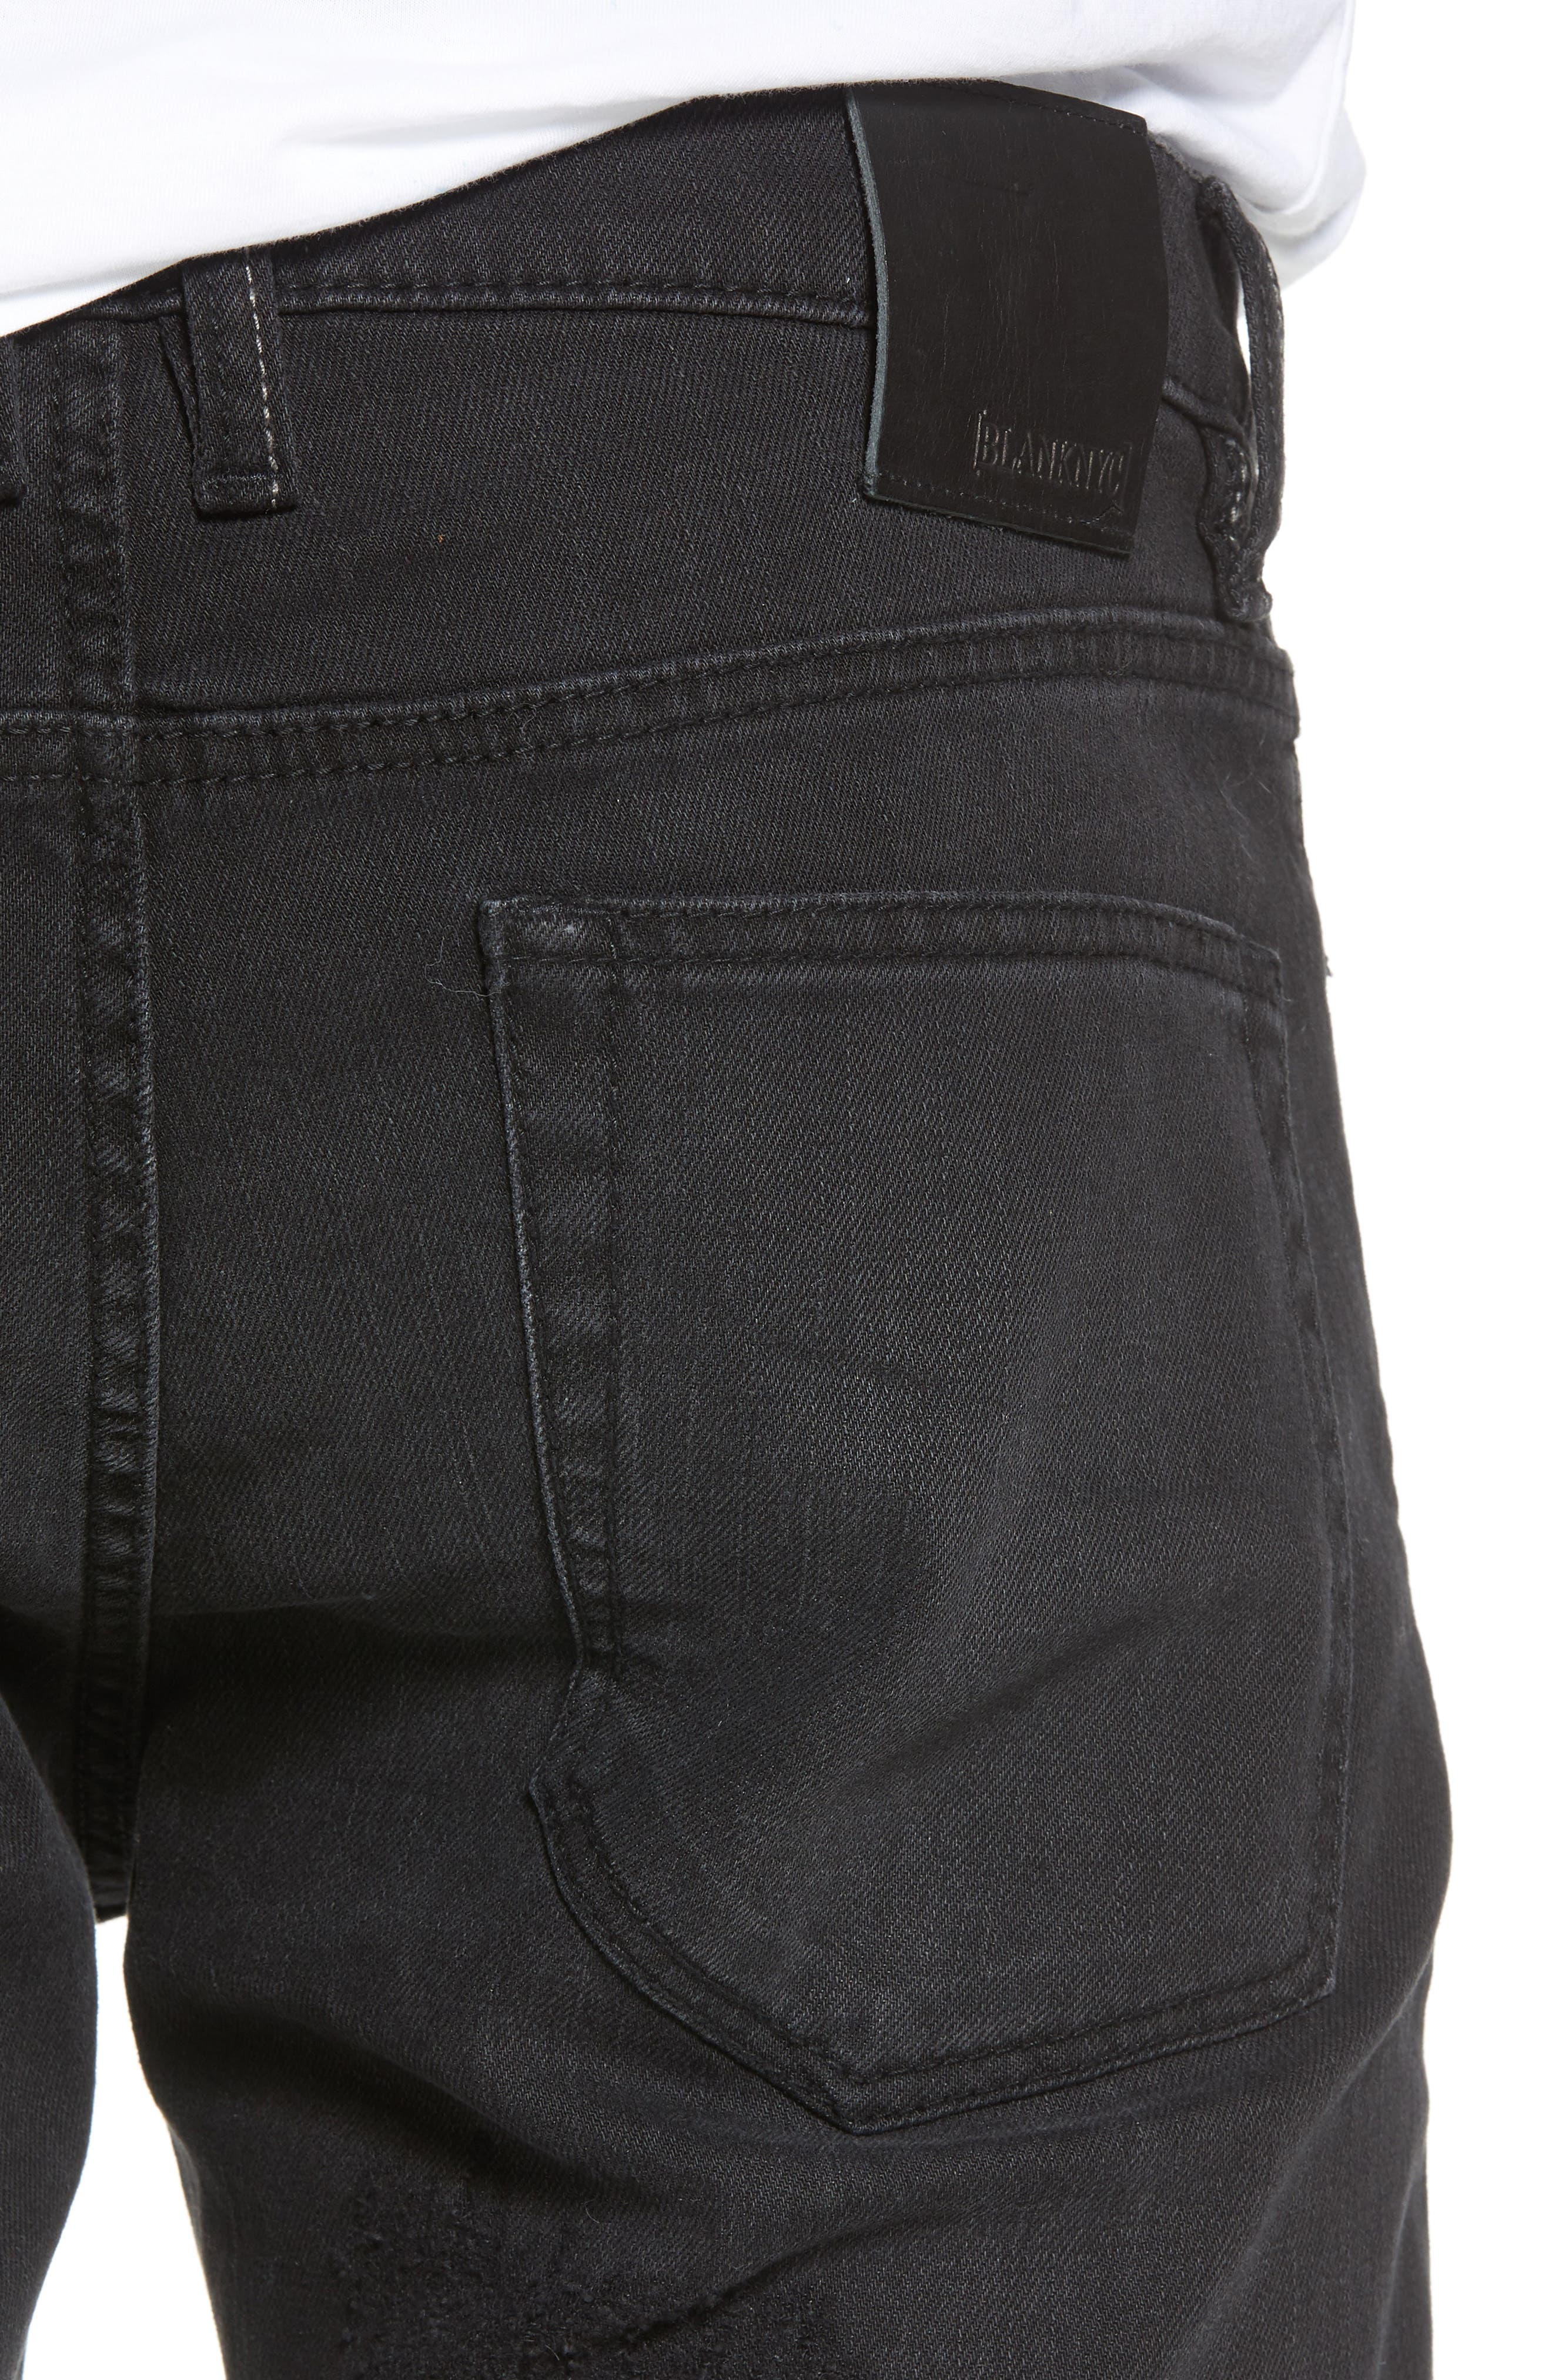 Wooster Slim Fit Jeans,                             Alternate thumbnail 4, color,                             WILLING BOUNDARY